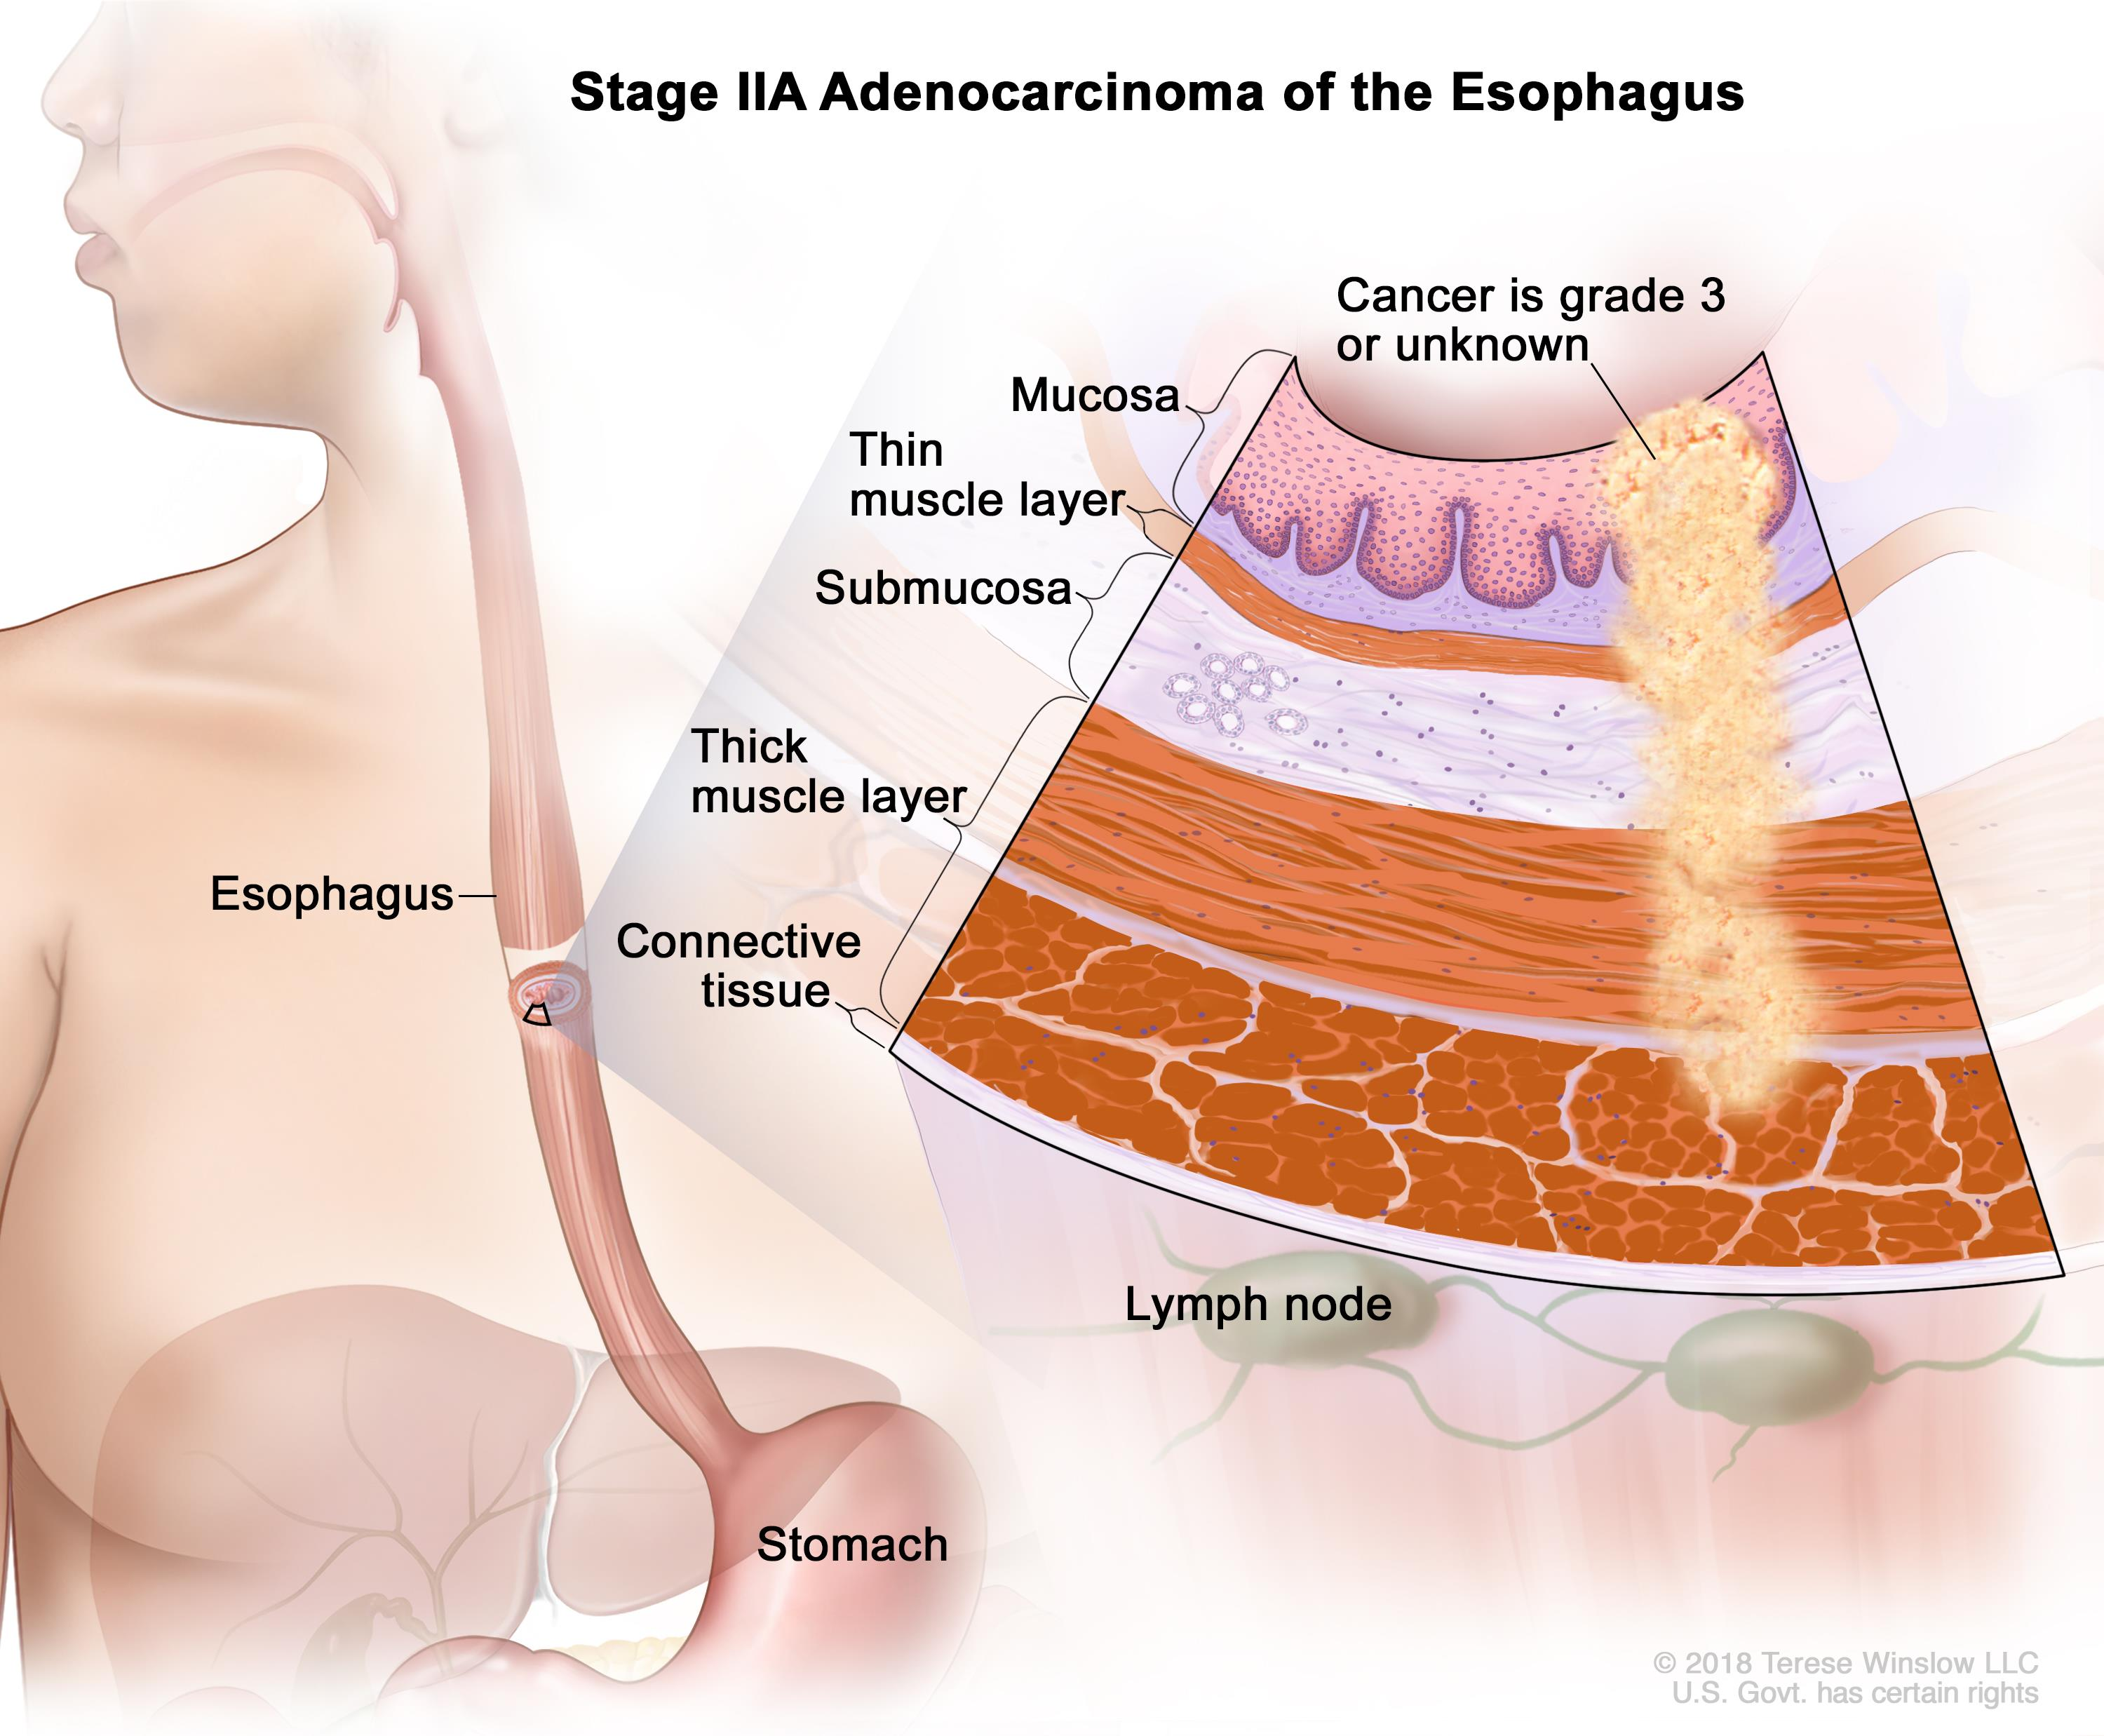 Stage IIA adenocarcinoma of the esophagus; drawing shows the esophagus and stomach. An inset shows cancer in the mucosa, submucosa, and muscle layers of the esophagus wall. Also shown is the connective tissue layer of the esophagus wall and lymph nodes.